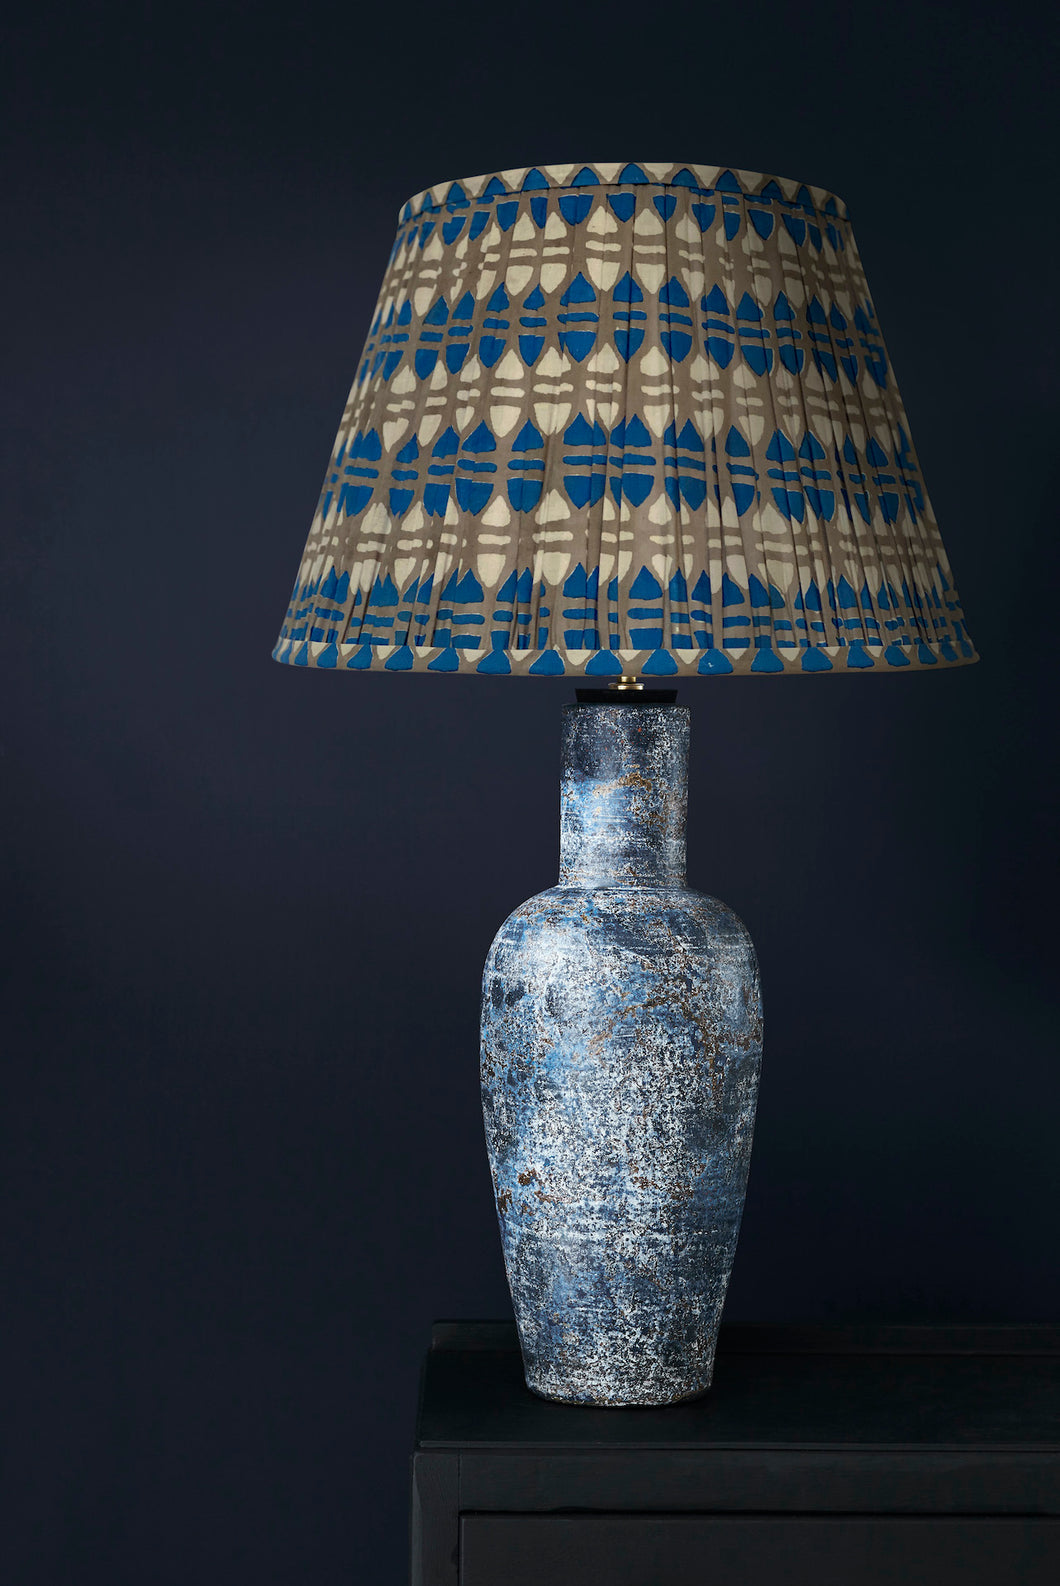 Stevie Lamp and Blue Acorn lampshade